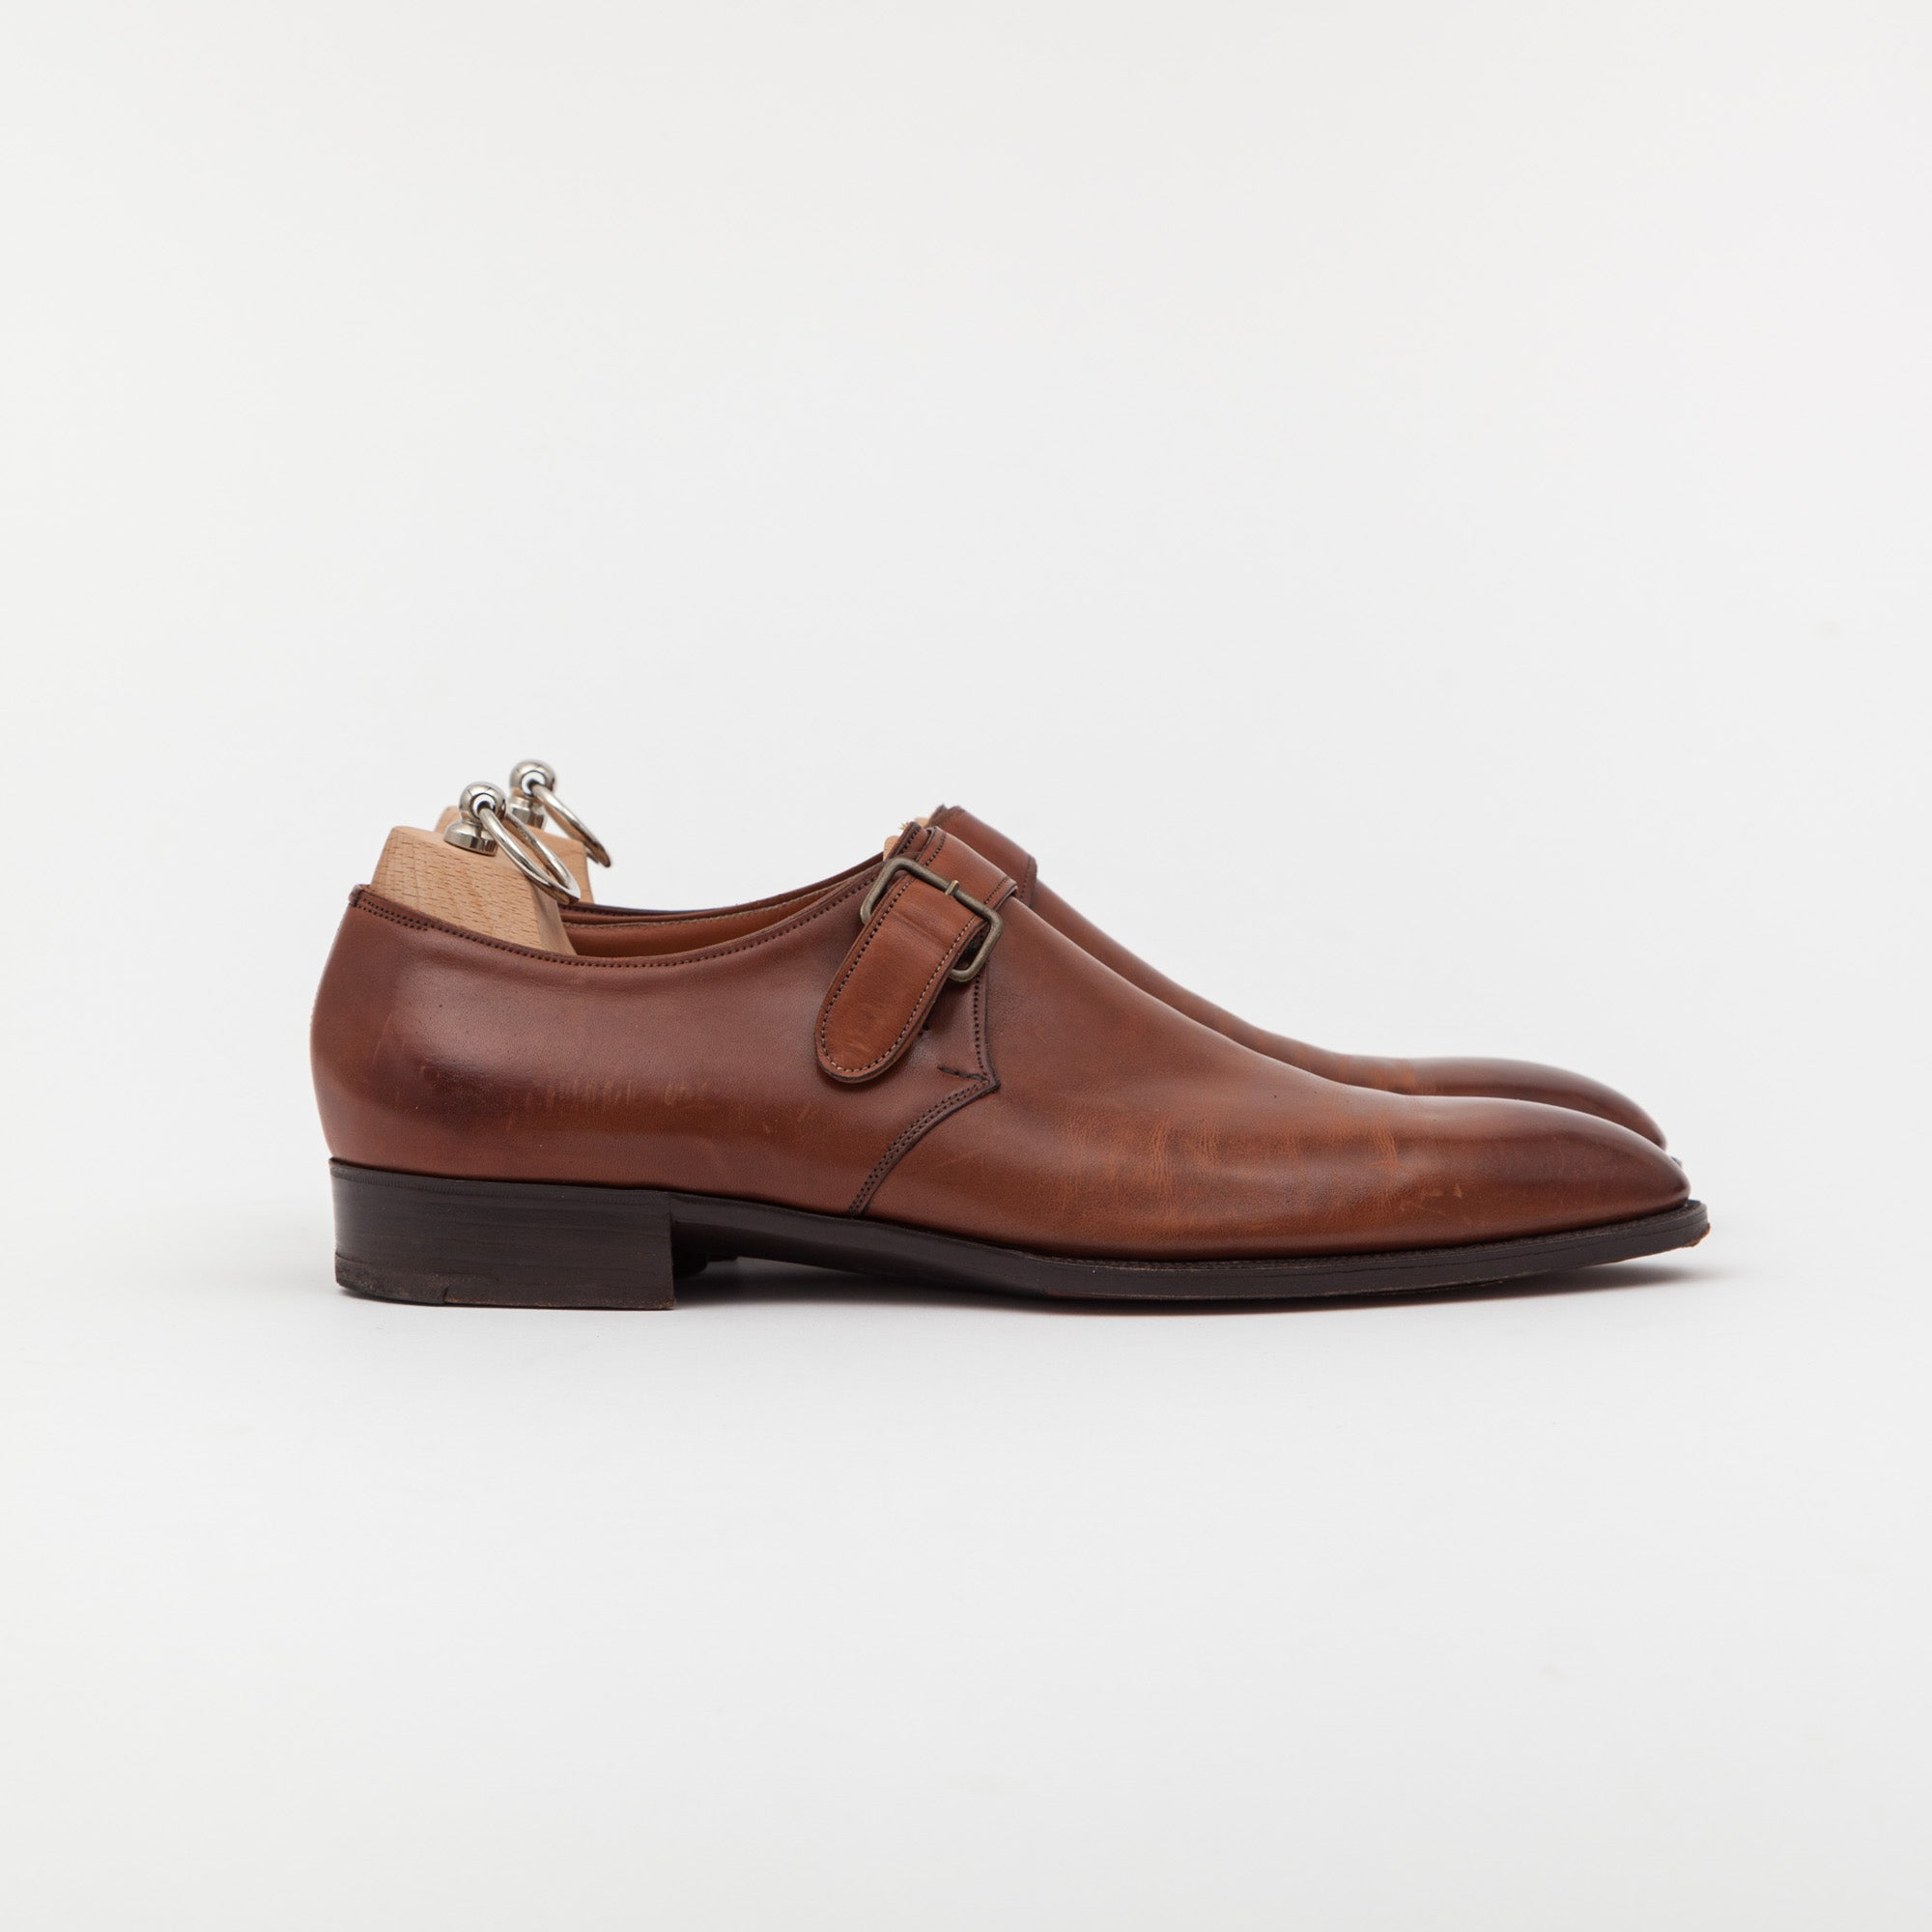 Gaziano & Girling Monk Straps